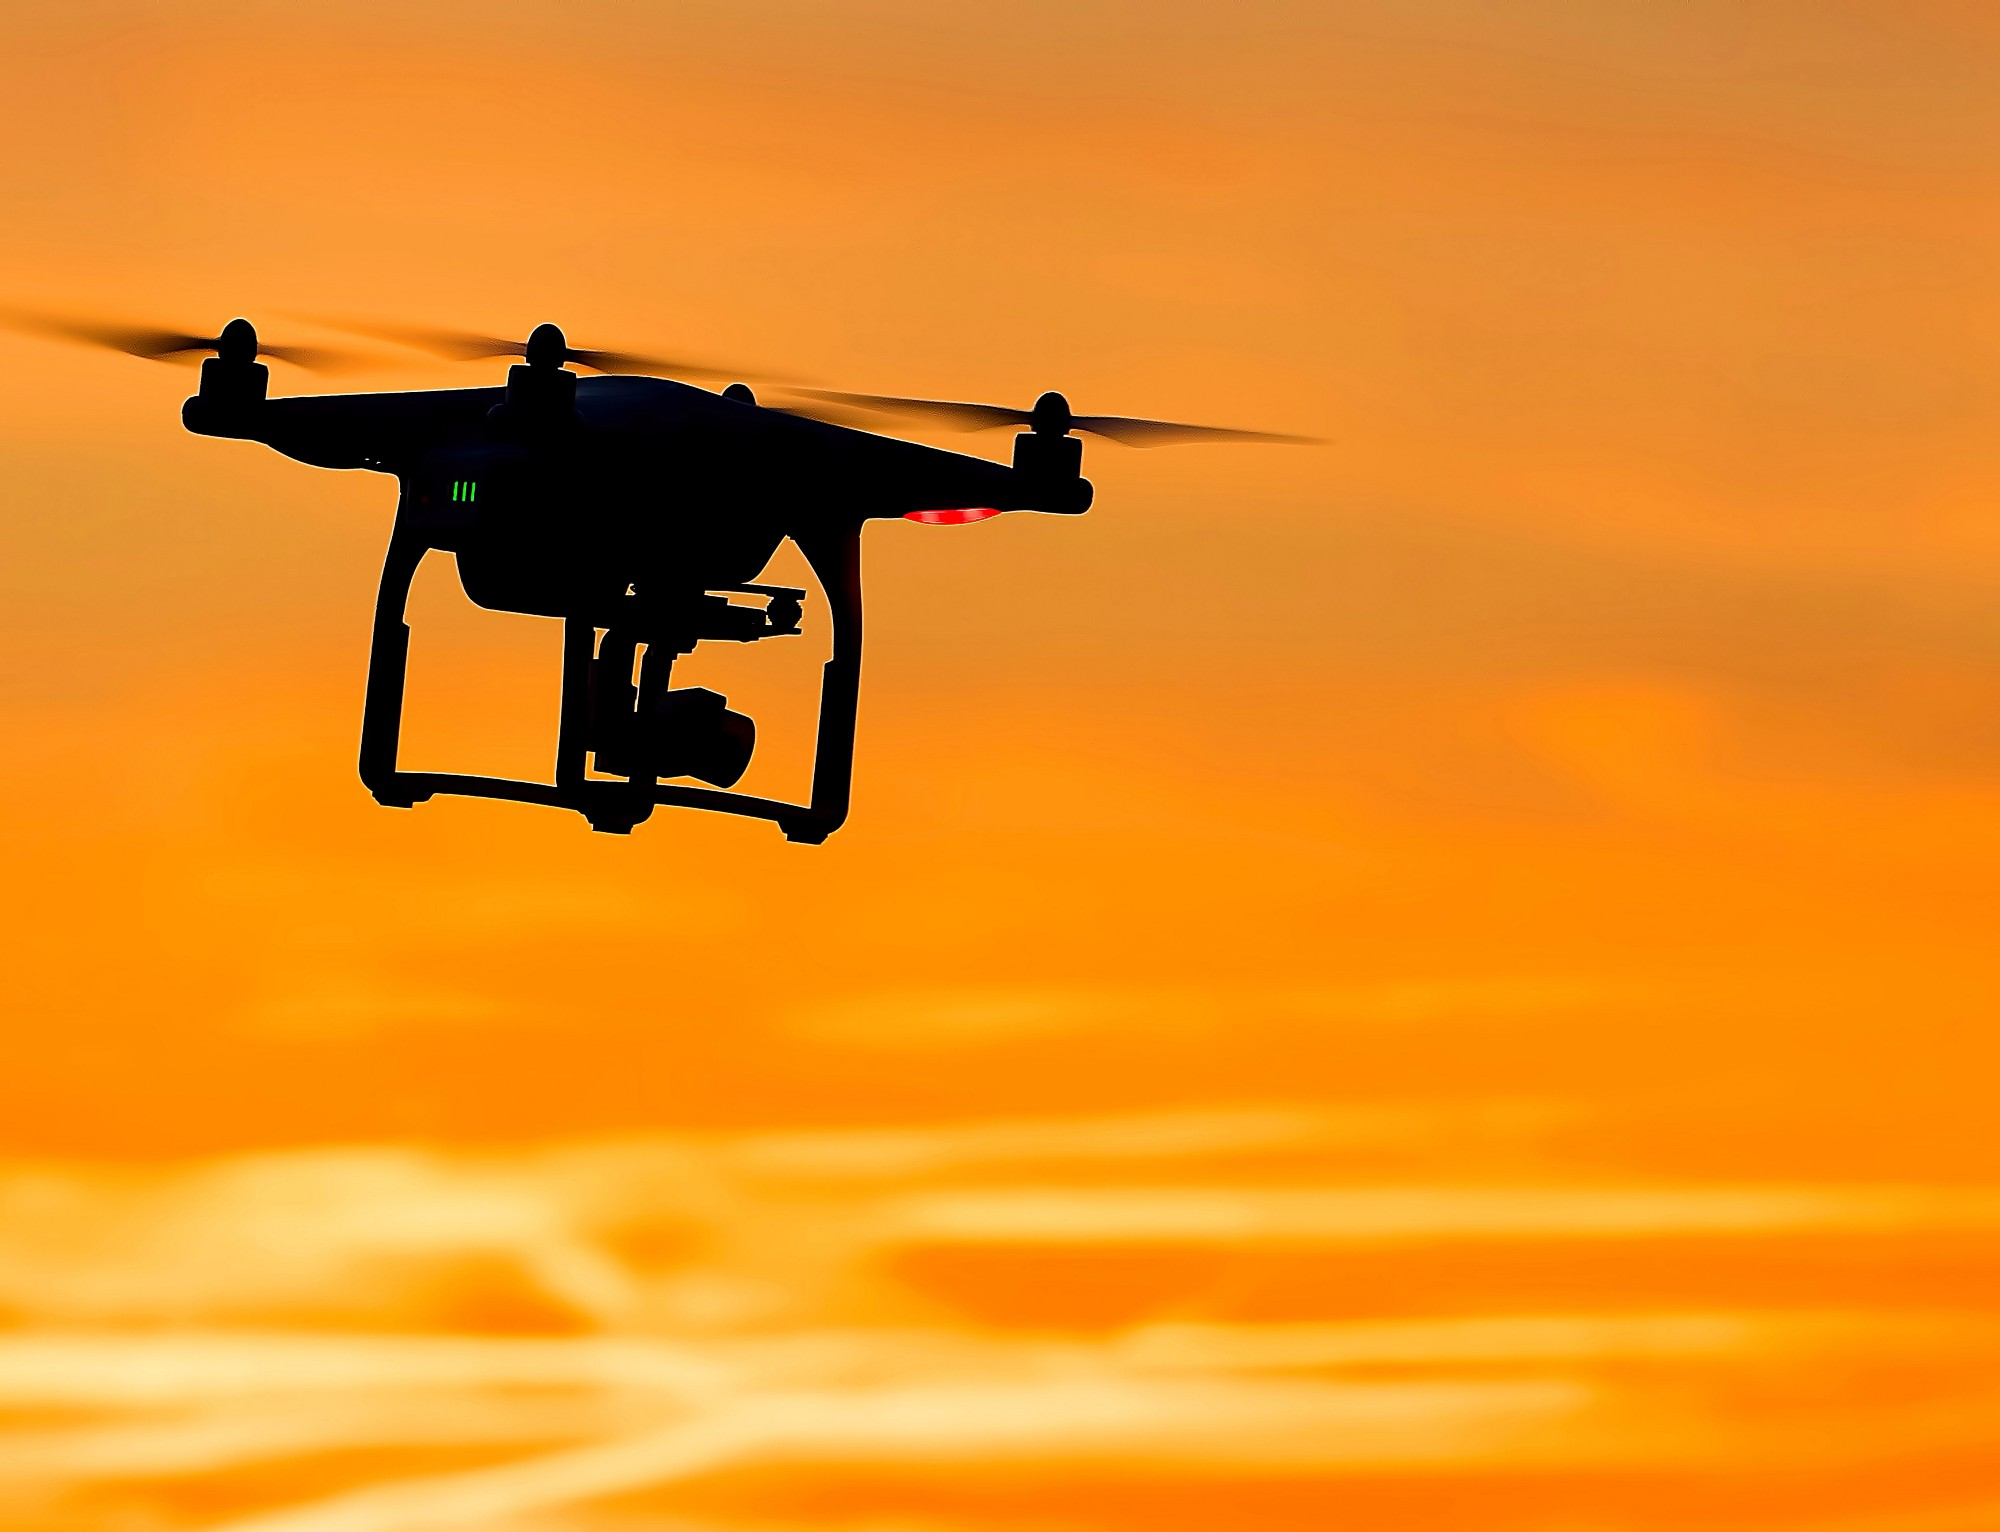 A drone at sunset